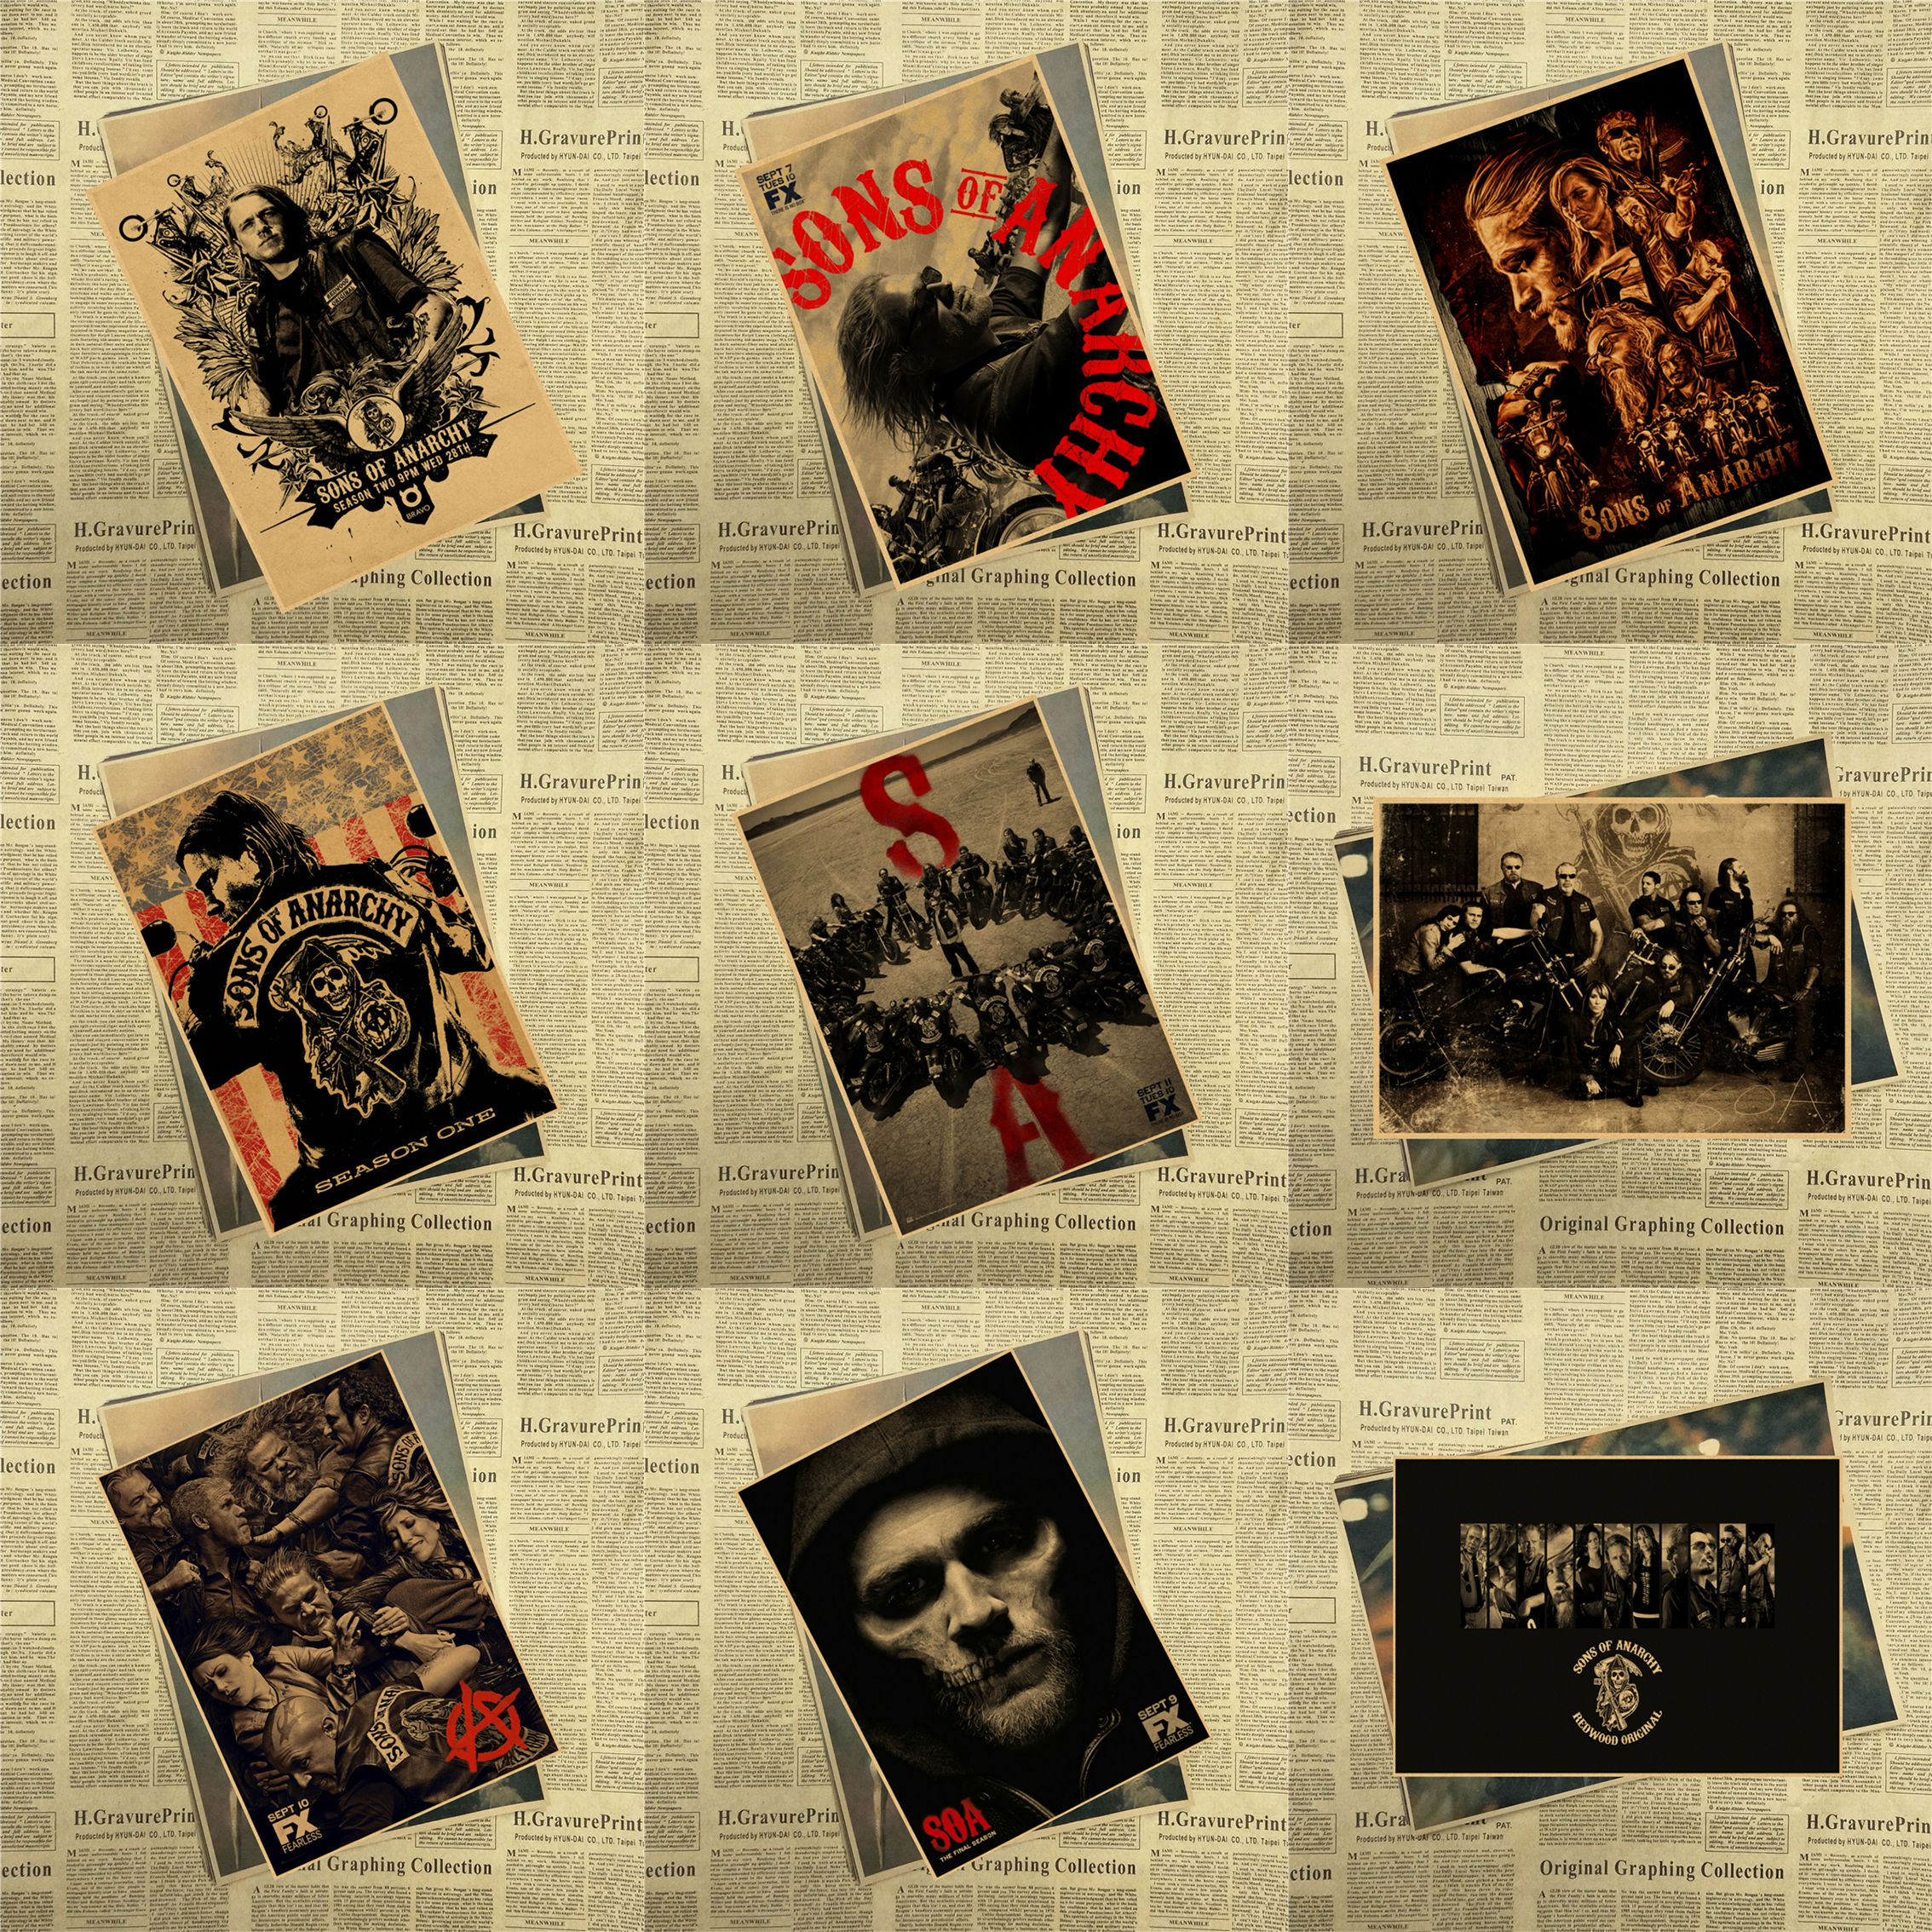 sons of anarchy Art Kraft Poster Print Jax Teller TV Series Pictures for Home Wall Decor 30x21cm